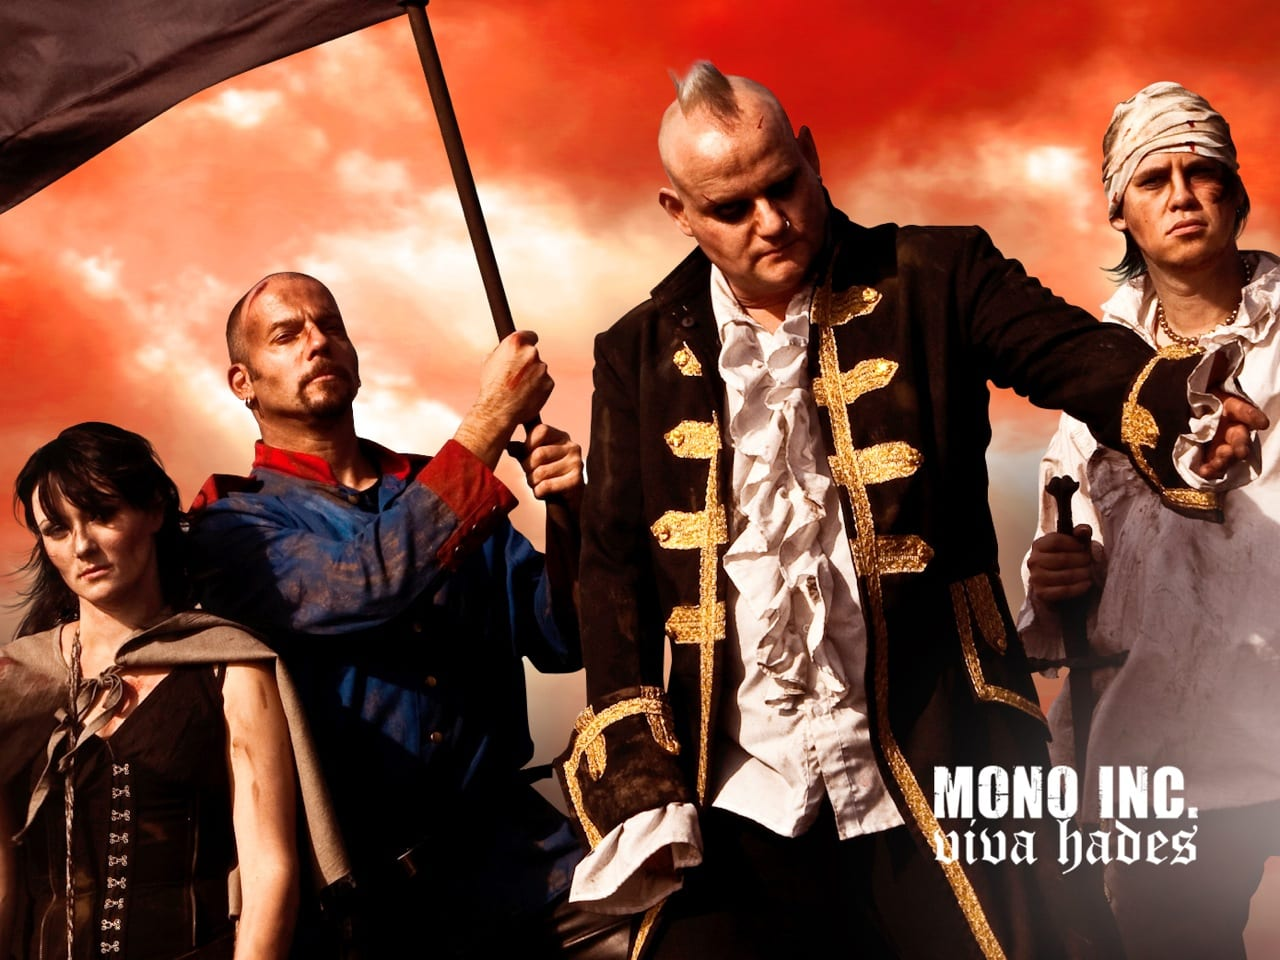 Mono Inc. - Viva Hades (official Promopic)